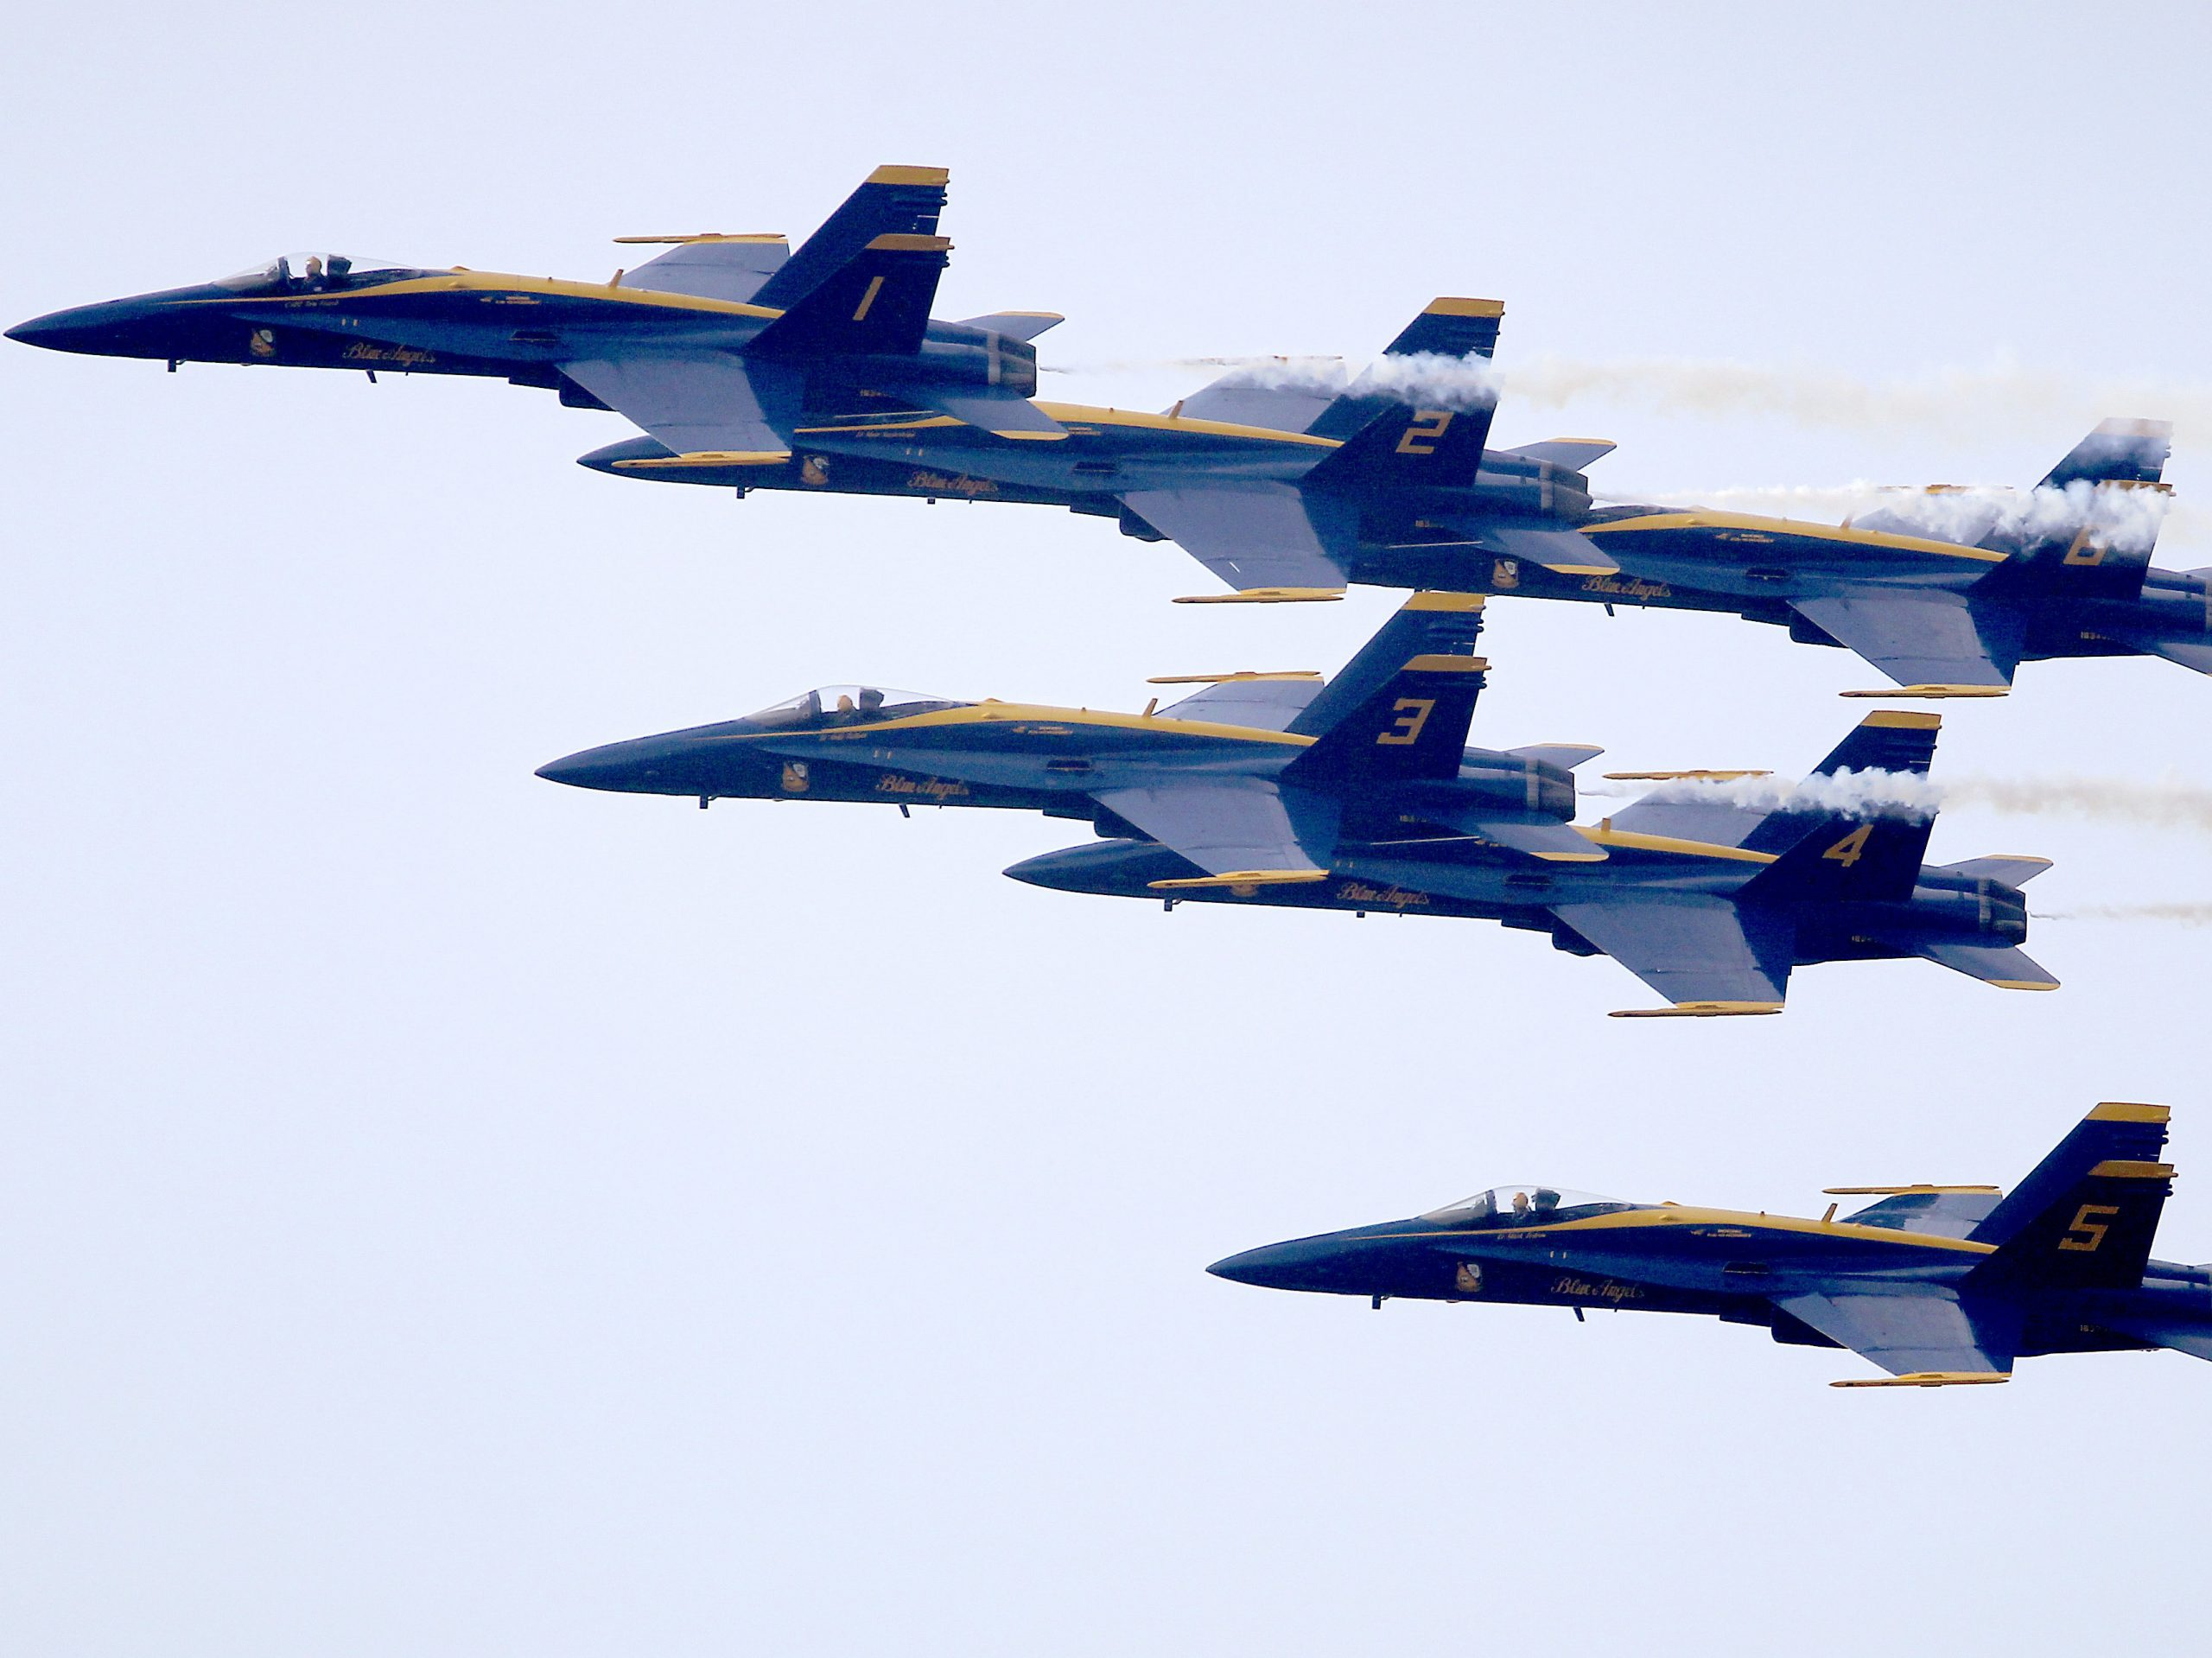 """The U.S. Navy and U.S. Air Force will conduct """"a collaborative salute"""" with a flyover above cities in New York, New Jersey and Pennsylvania on Tuesday. In this 2015 photo the U.S. Navy Blue Angels do a flyover at the Arnold Palmer Invitational golf tournament in Orlando, Fla."""